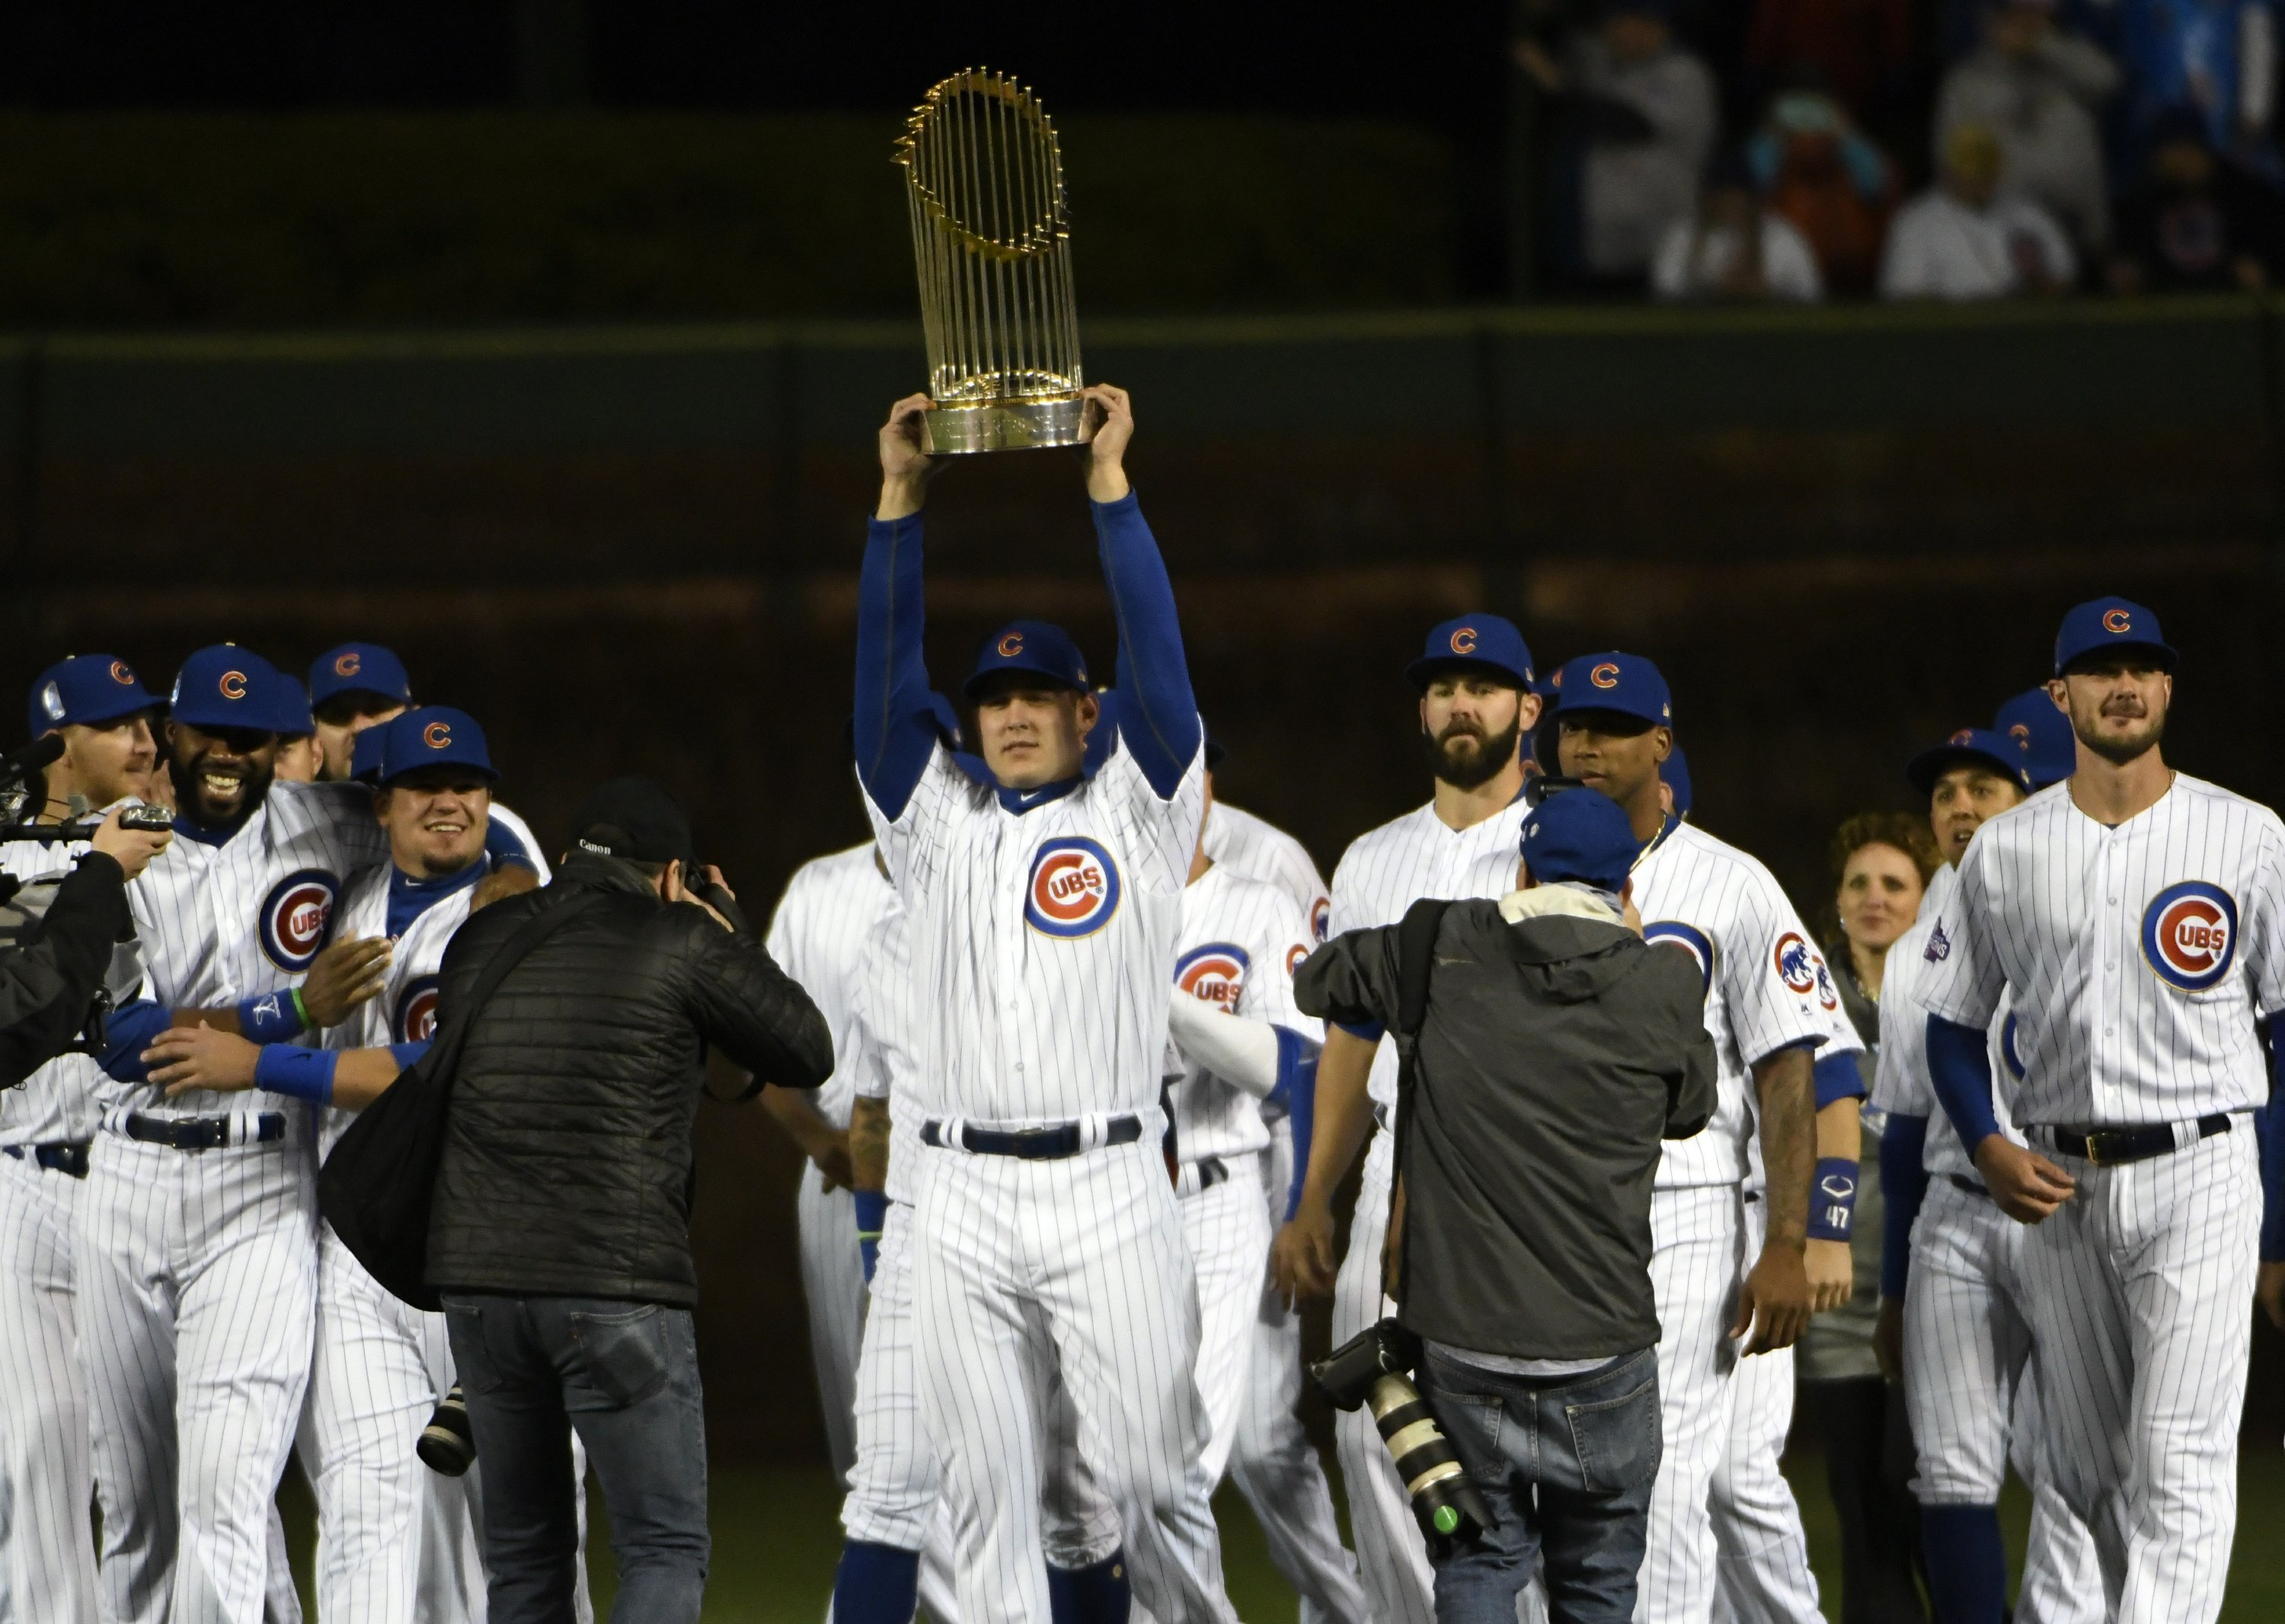 Chicago Cubs Championship Ring World Seires 2016 MVP Anthony Rizzo Commemorate